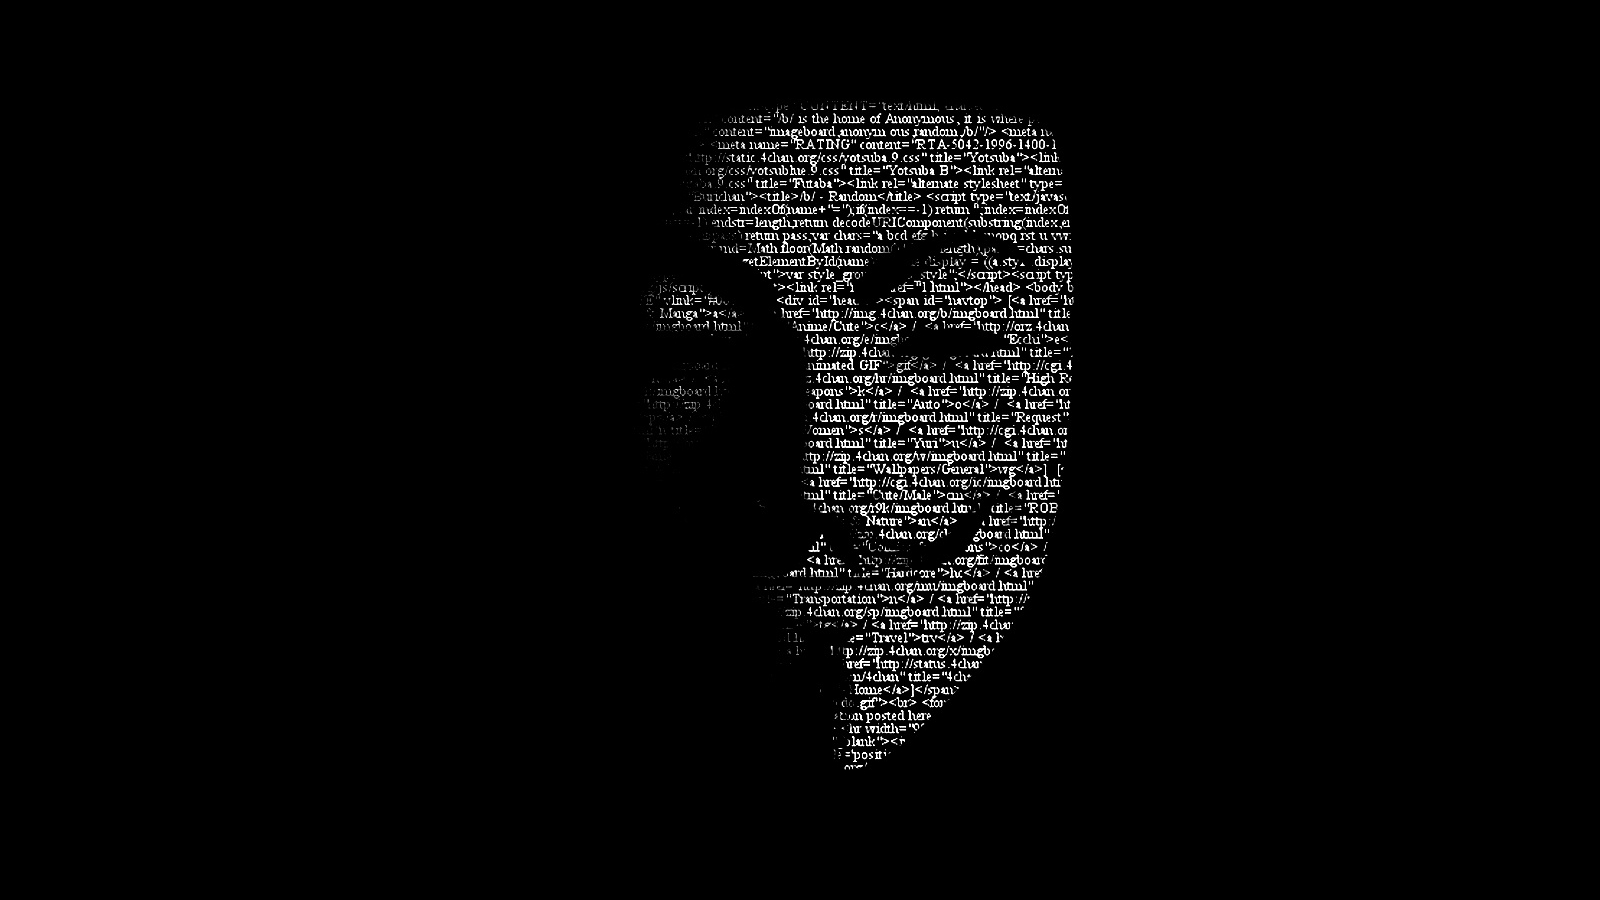 Free Download Anonymous Background For Pinterest 1600x1200 For Your Desktop Mobile Tablet Explore 43 Hackers Wallpaper Abyss Dark Hd Hackers Wallpaper Hd Abyss Factory Hackers Hd Wallpaper Abyss Dark